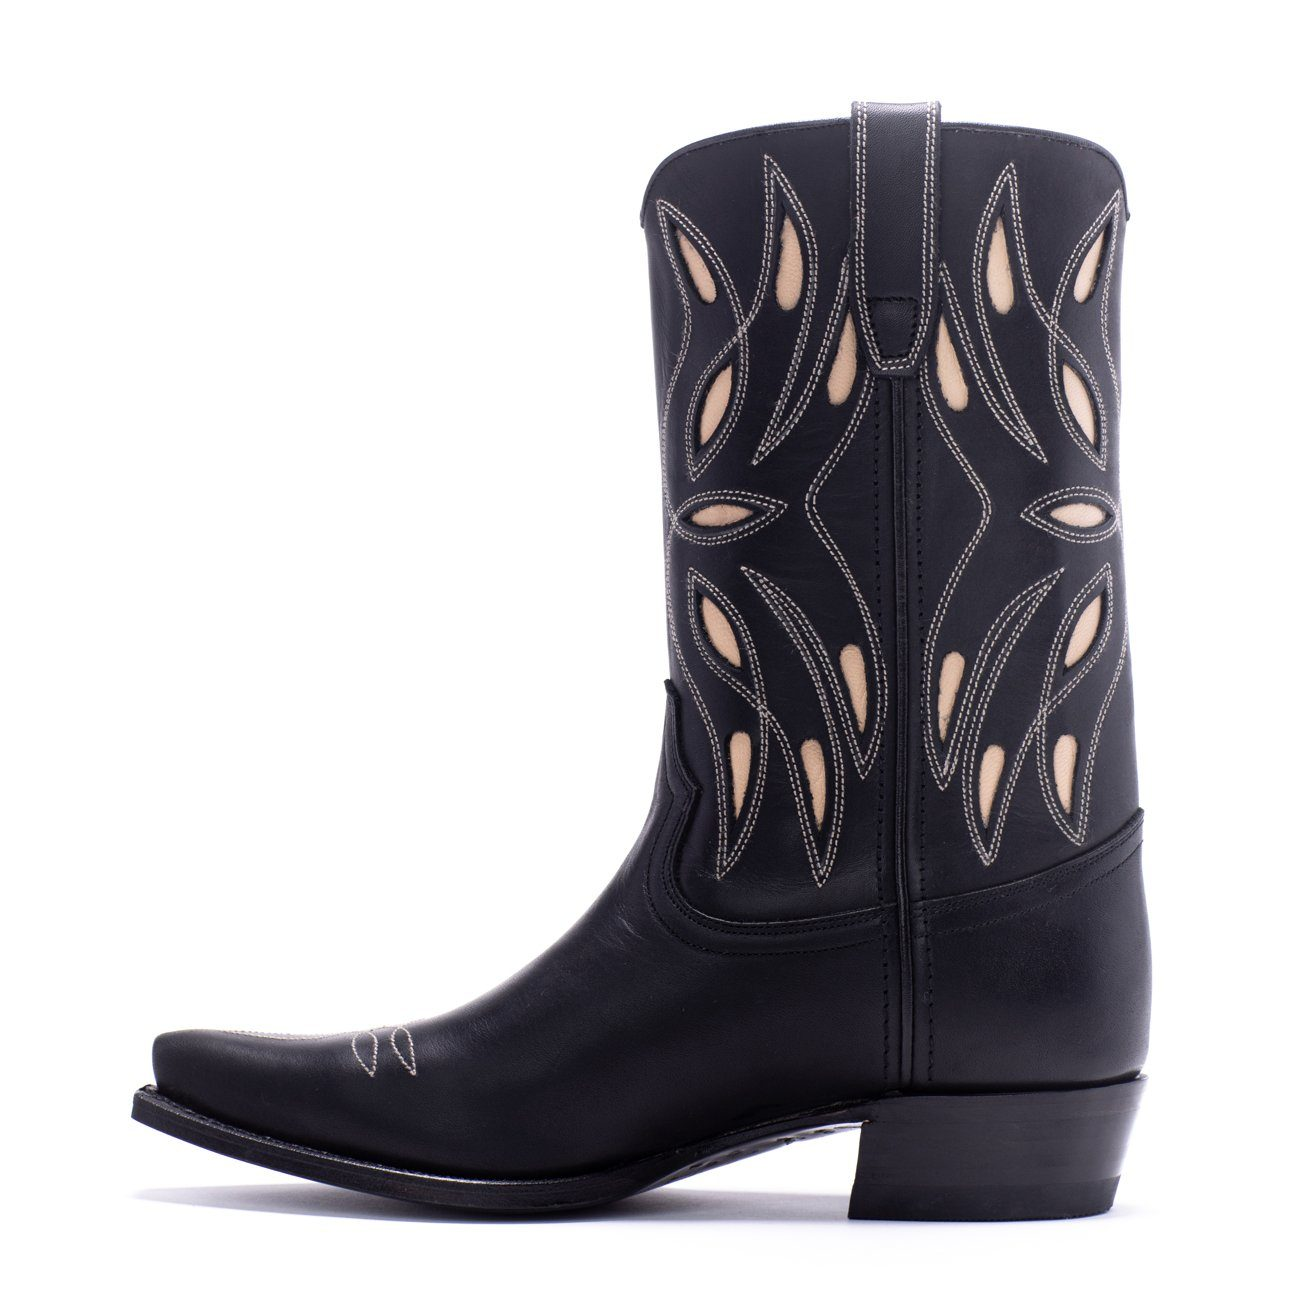 Womens Sagebrush Black Leather Cowboy Boot - Ranch Road Boots™